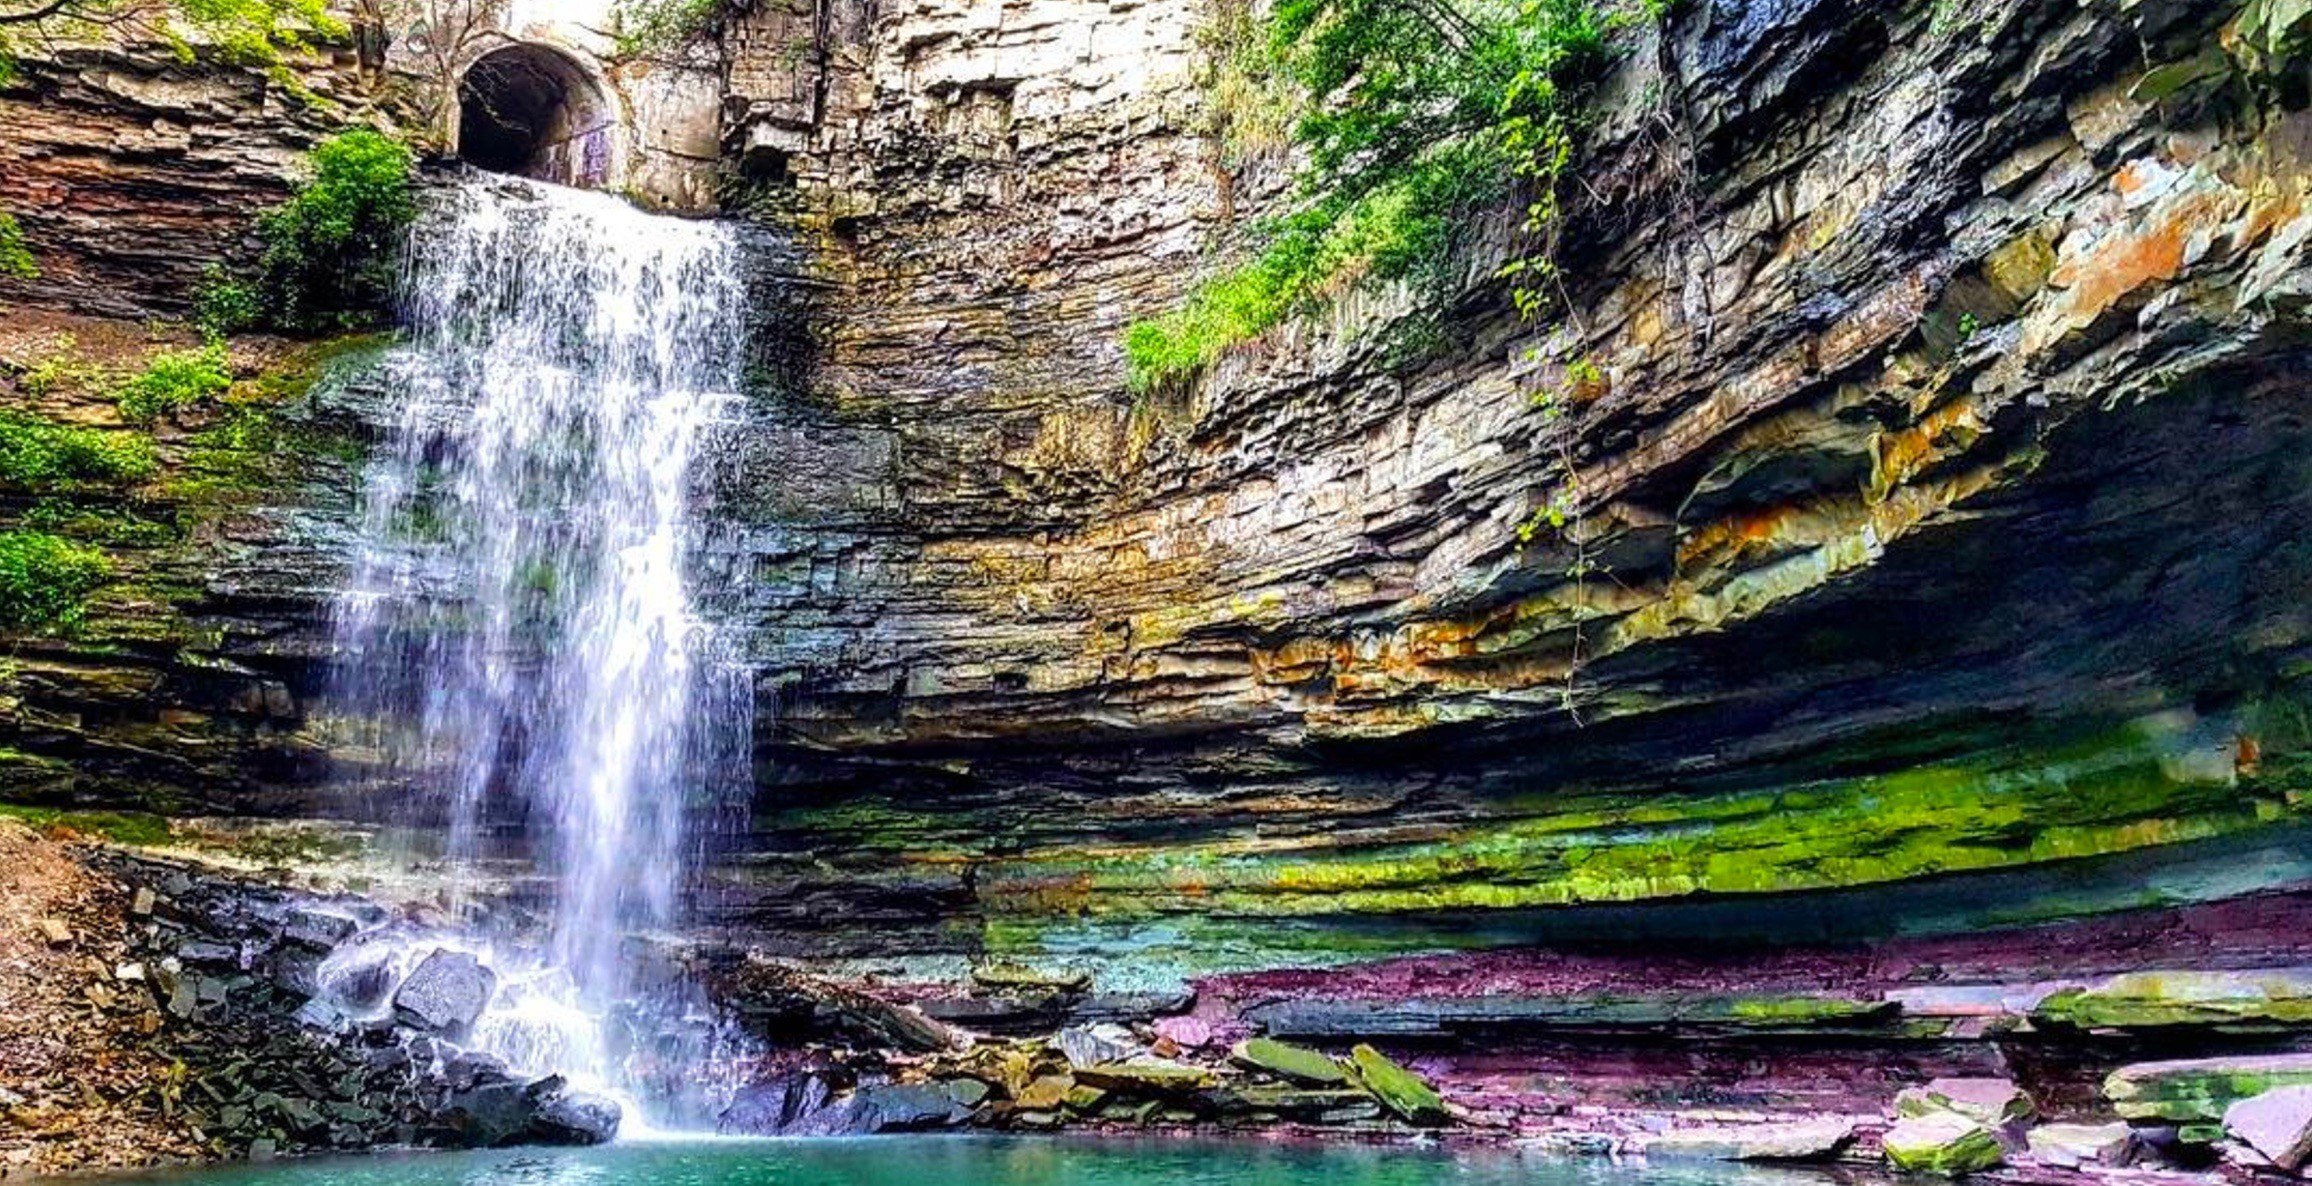 This beautiful waterfall near Toronto is definitely worth the hike